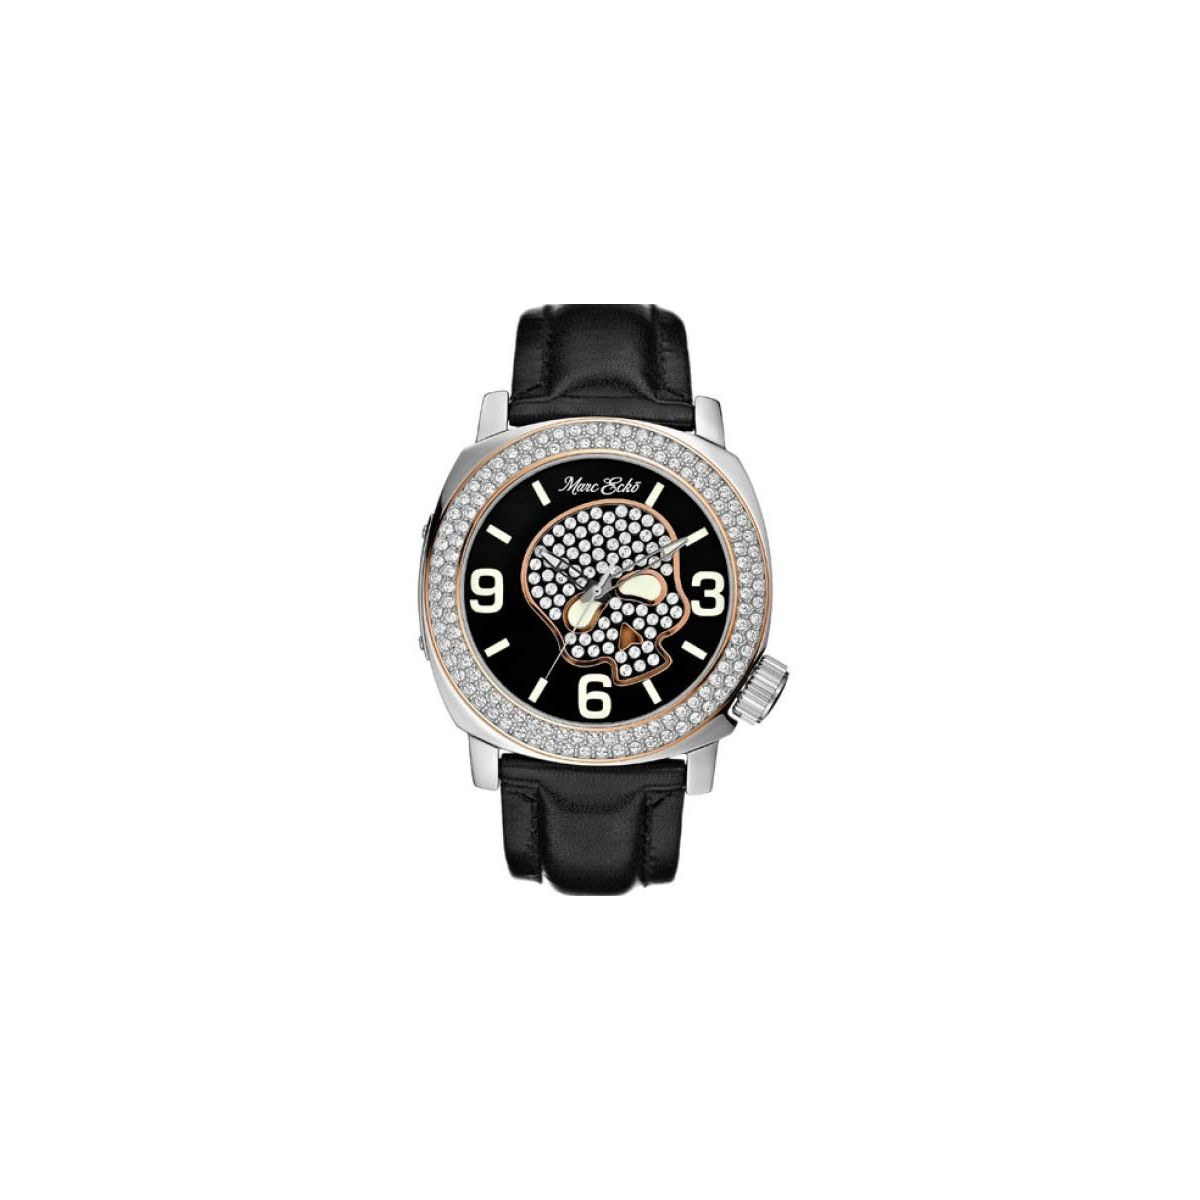 MARC ECKO UNISEX BETTER OF DEAD